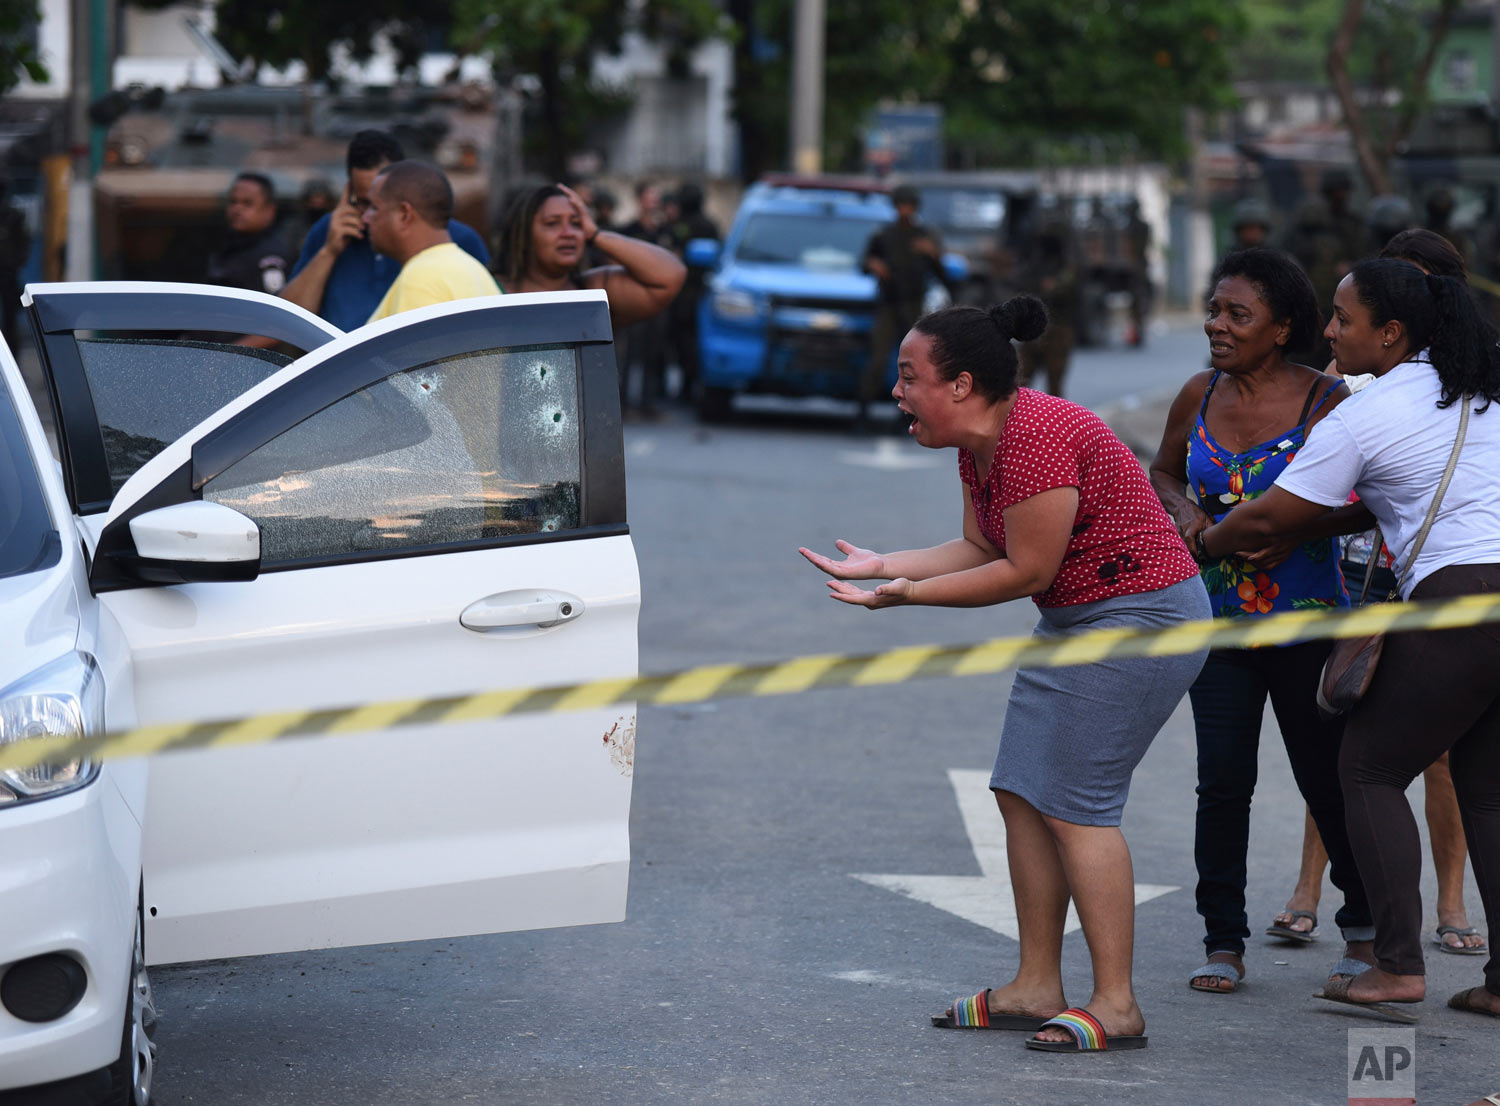 A woman cries out in agony as she looks at the body of Evaldo dos Santos Rosa slumped inside his car in the Guadalupe neighborhood of Rio de Janeiro, Brazil, April 7, 2019. Authorities say soldiers mistook Evaldo dos Santos Rosa's for that of criminals and was hit by 80 shots fired by members of the armed forces, killing him and wounding his wife's stepfather. (AP Photos/Fabio Teixeira)